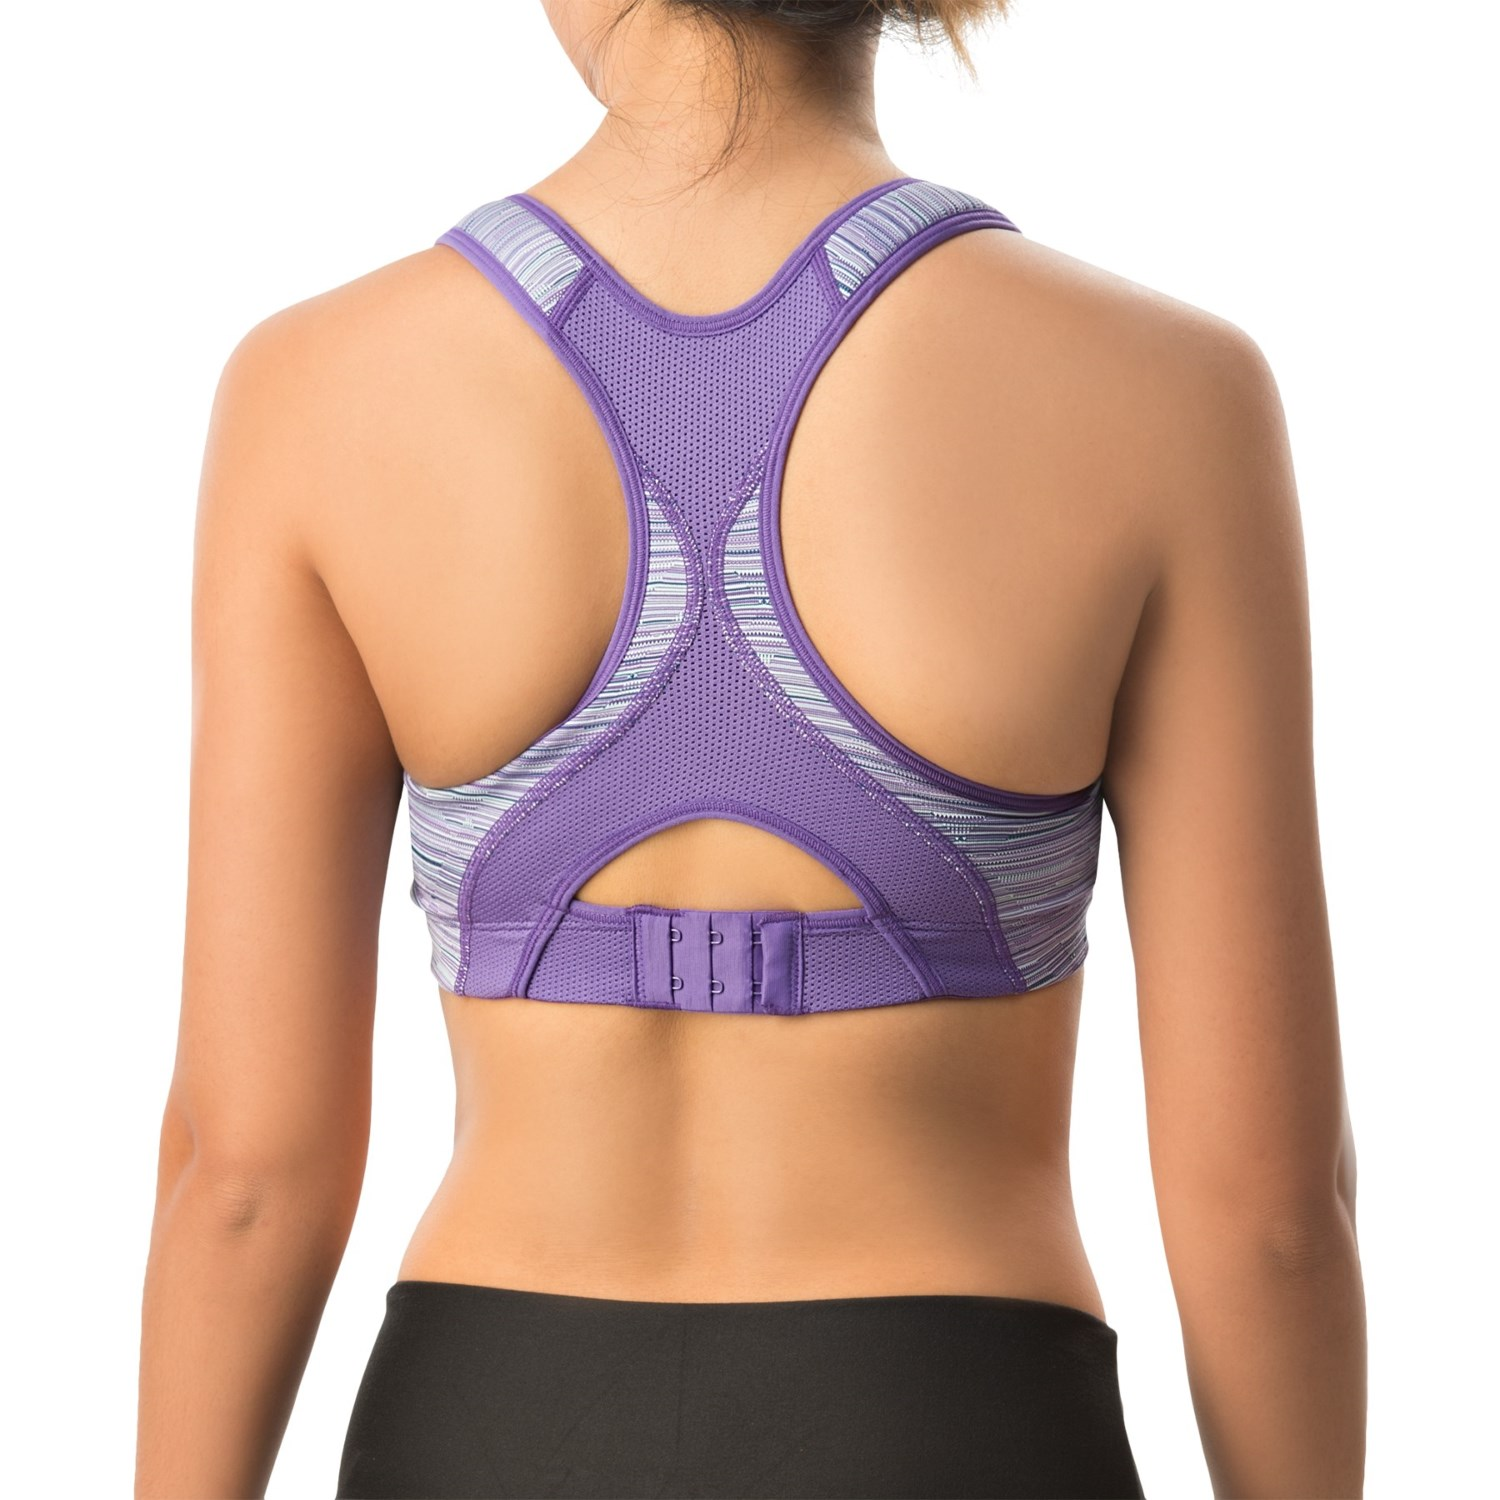 Moving Comfort Rebound Racer Sports Bra (For Women) - Save 50%